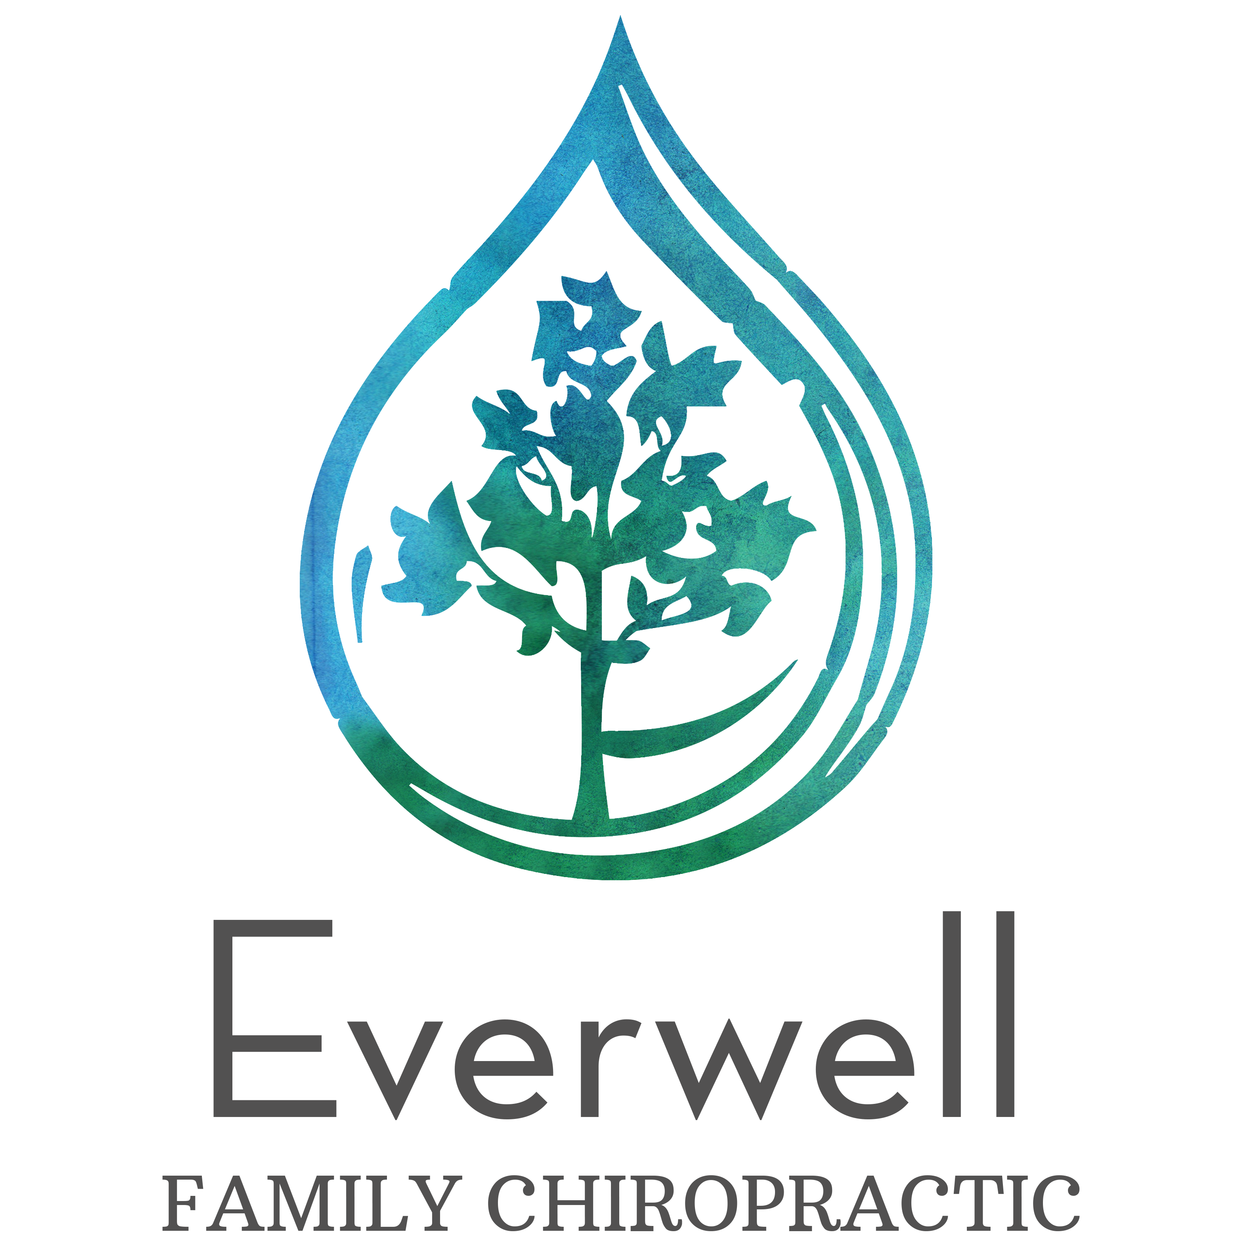 Everwell Family Chiropractic In Lincoln Ne 68516